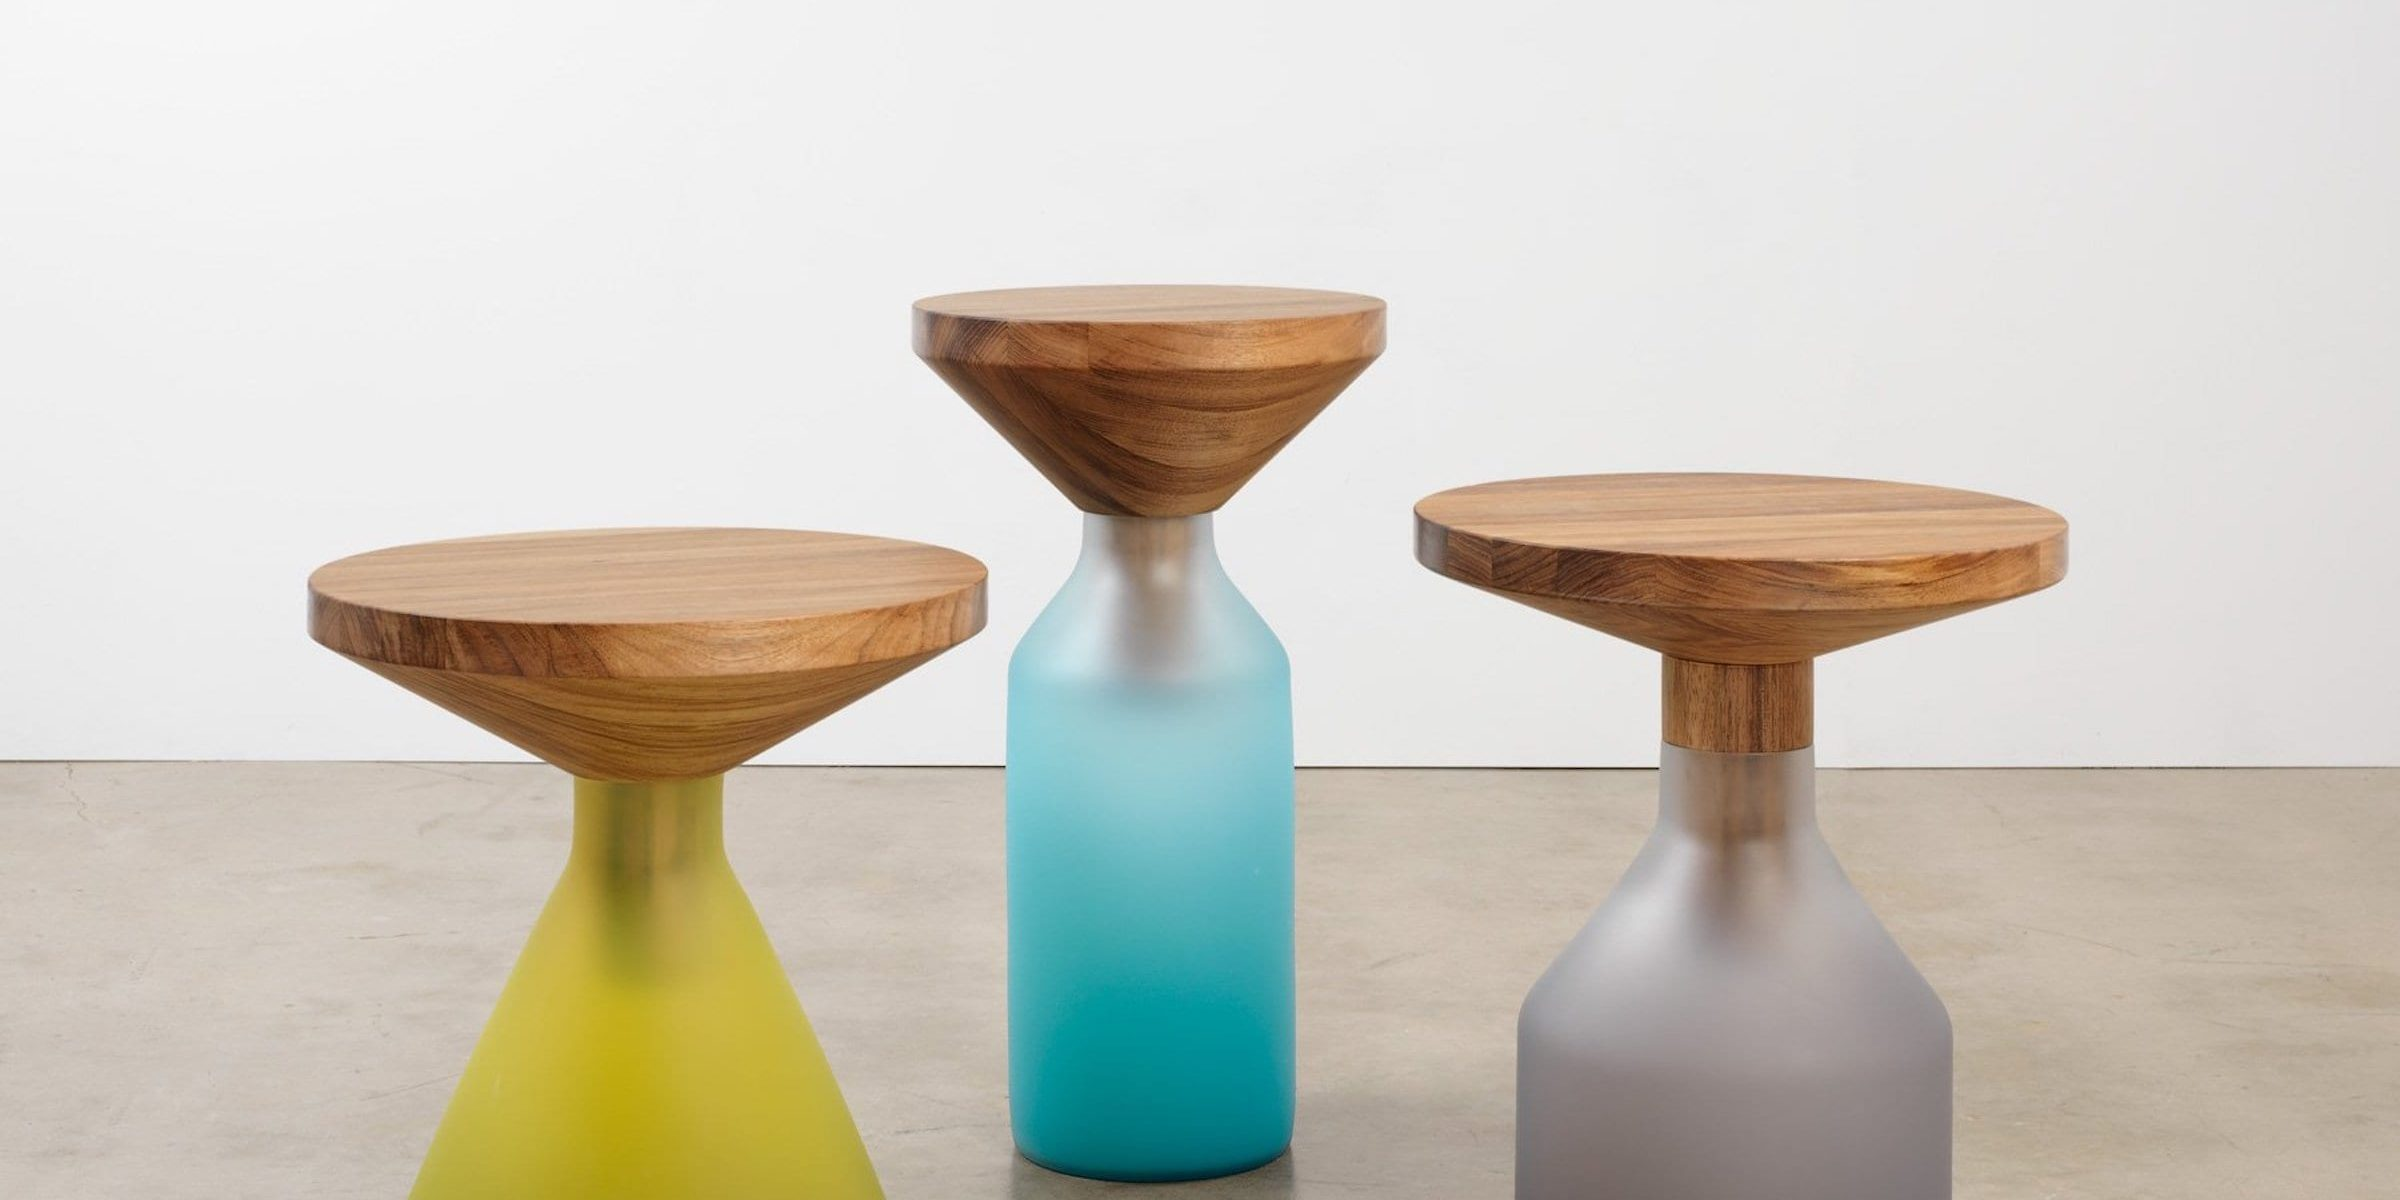 A series of congruent side tables, a collaboration from Adelaide's Jam Factory between Goulder and glass artist Liam Fleming